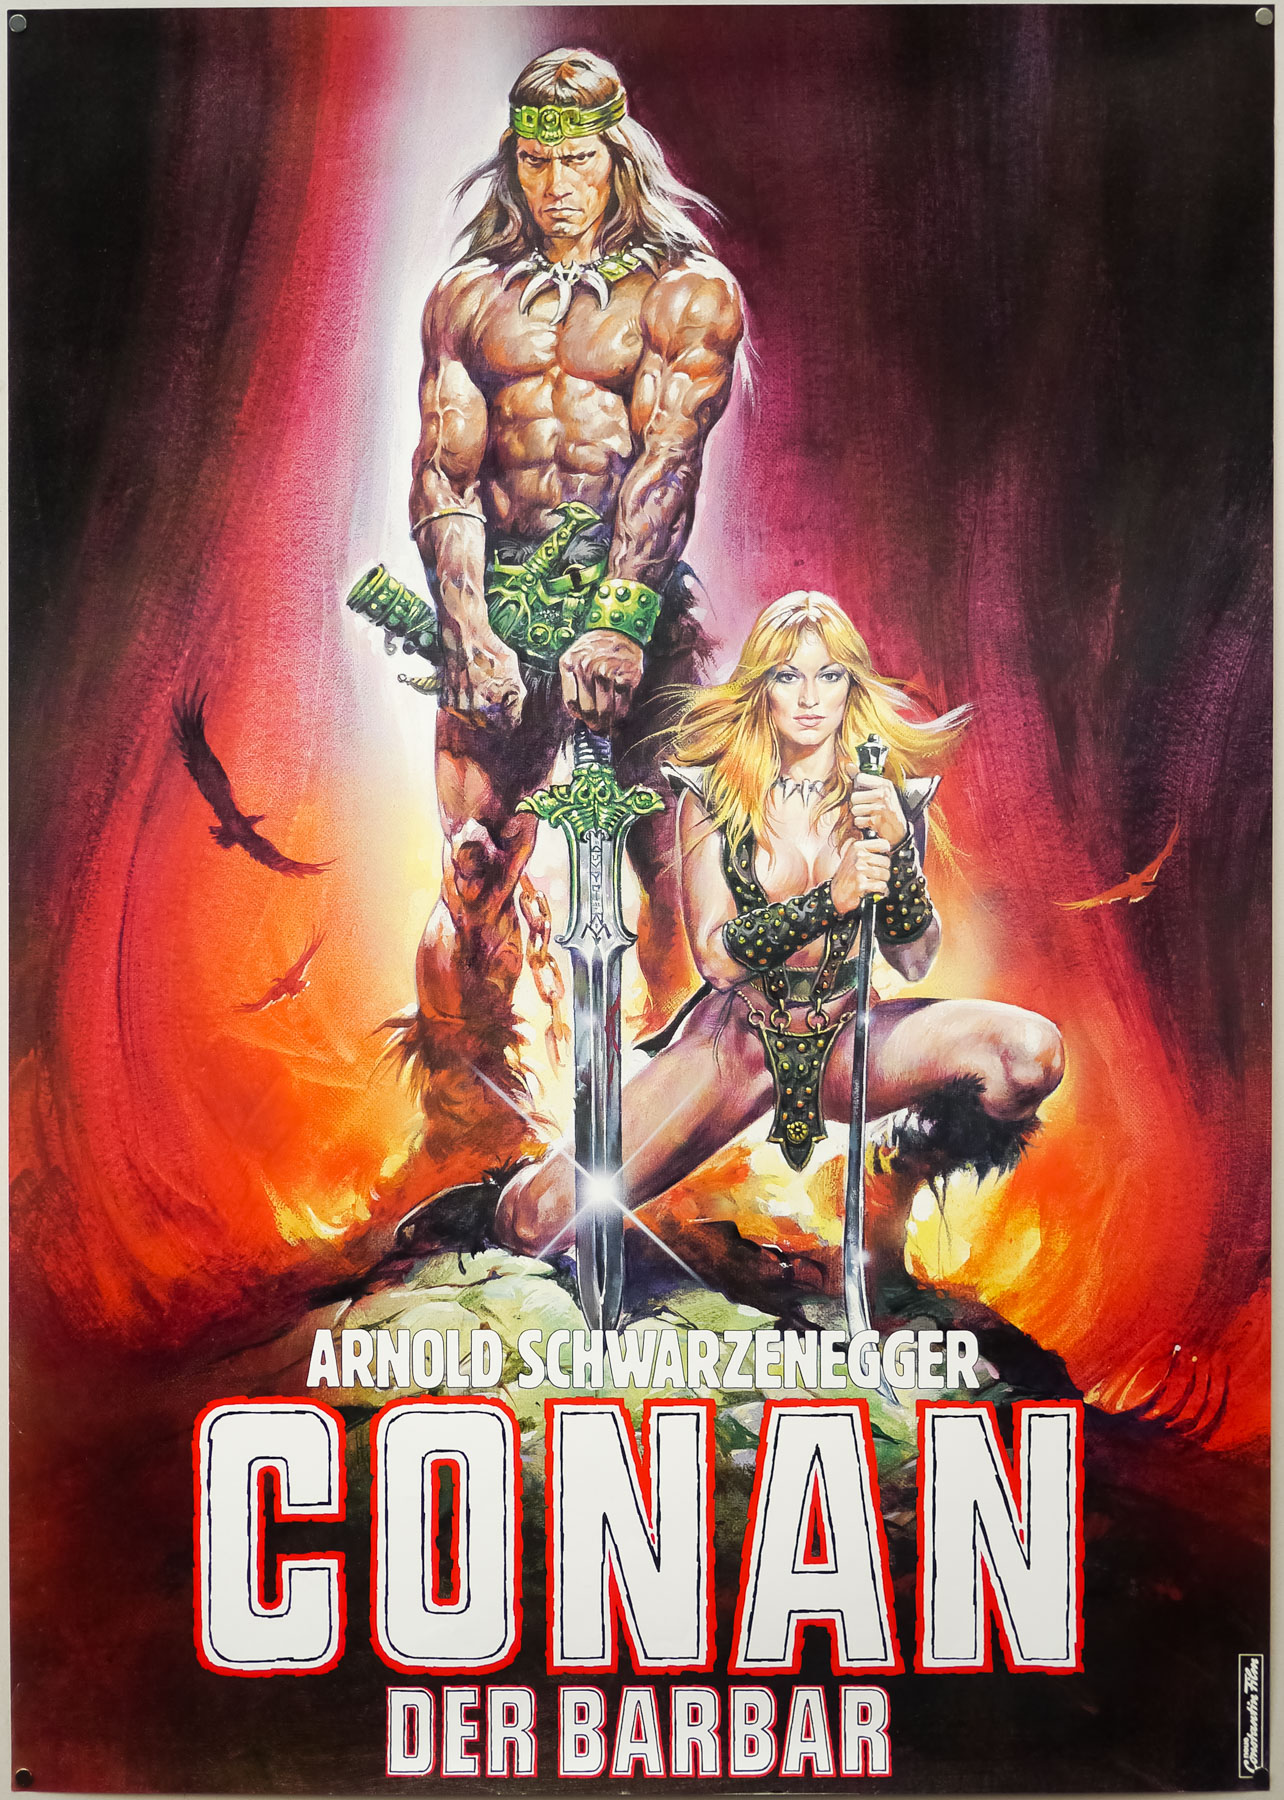 The German teaser poster for Conan the Barbarian, designed and painted by Renato Casaro, 1982. The German distributors asked Renato to adapt the poster slightly from his original artwork used on the American one sheet.